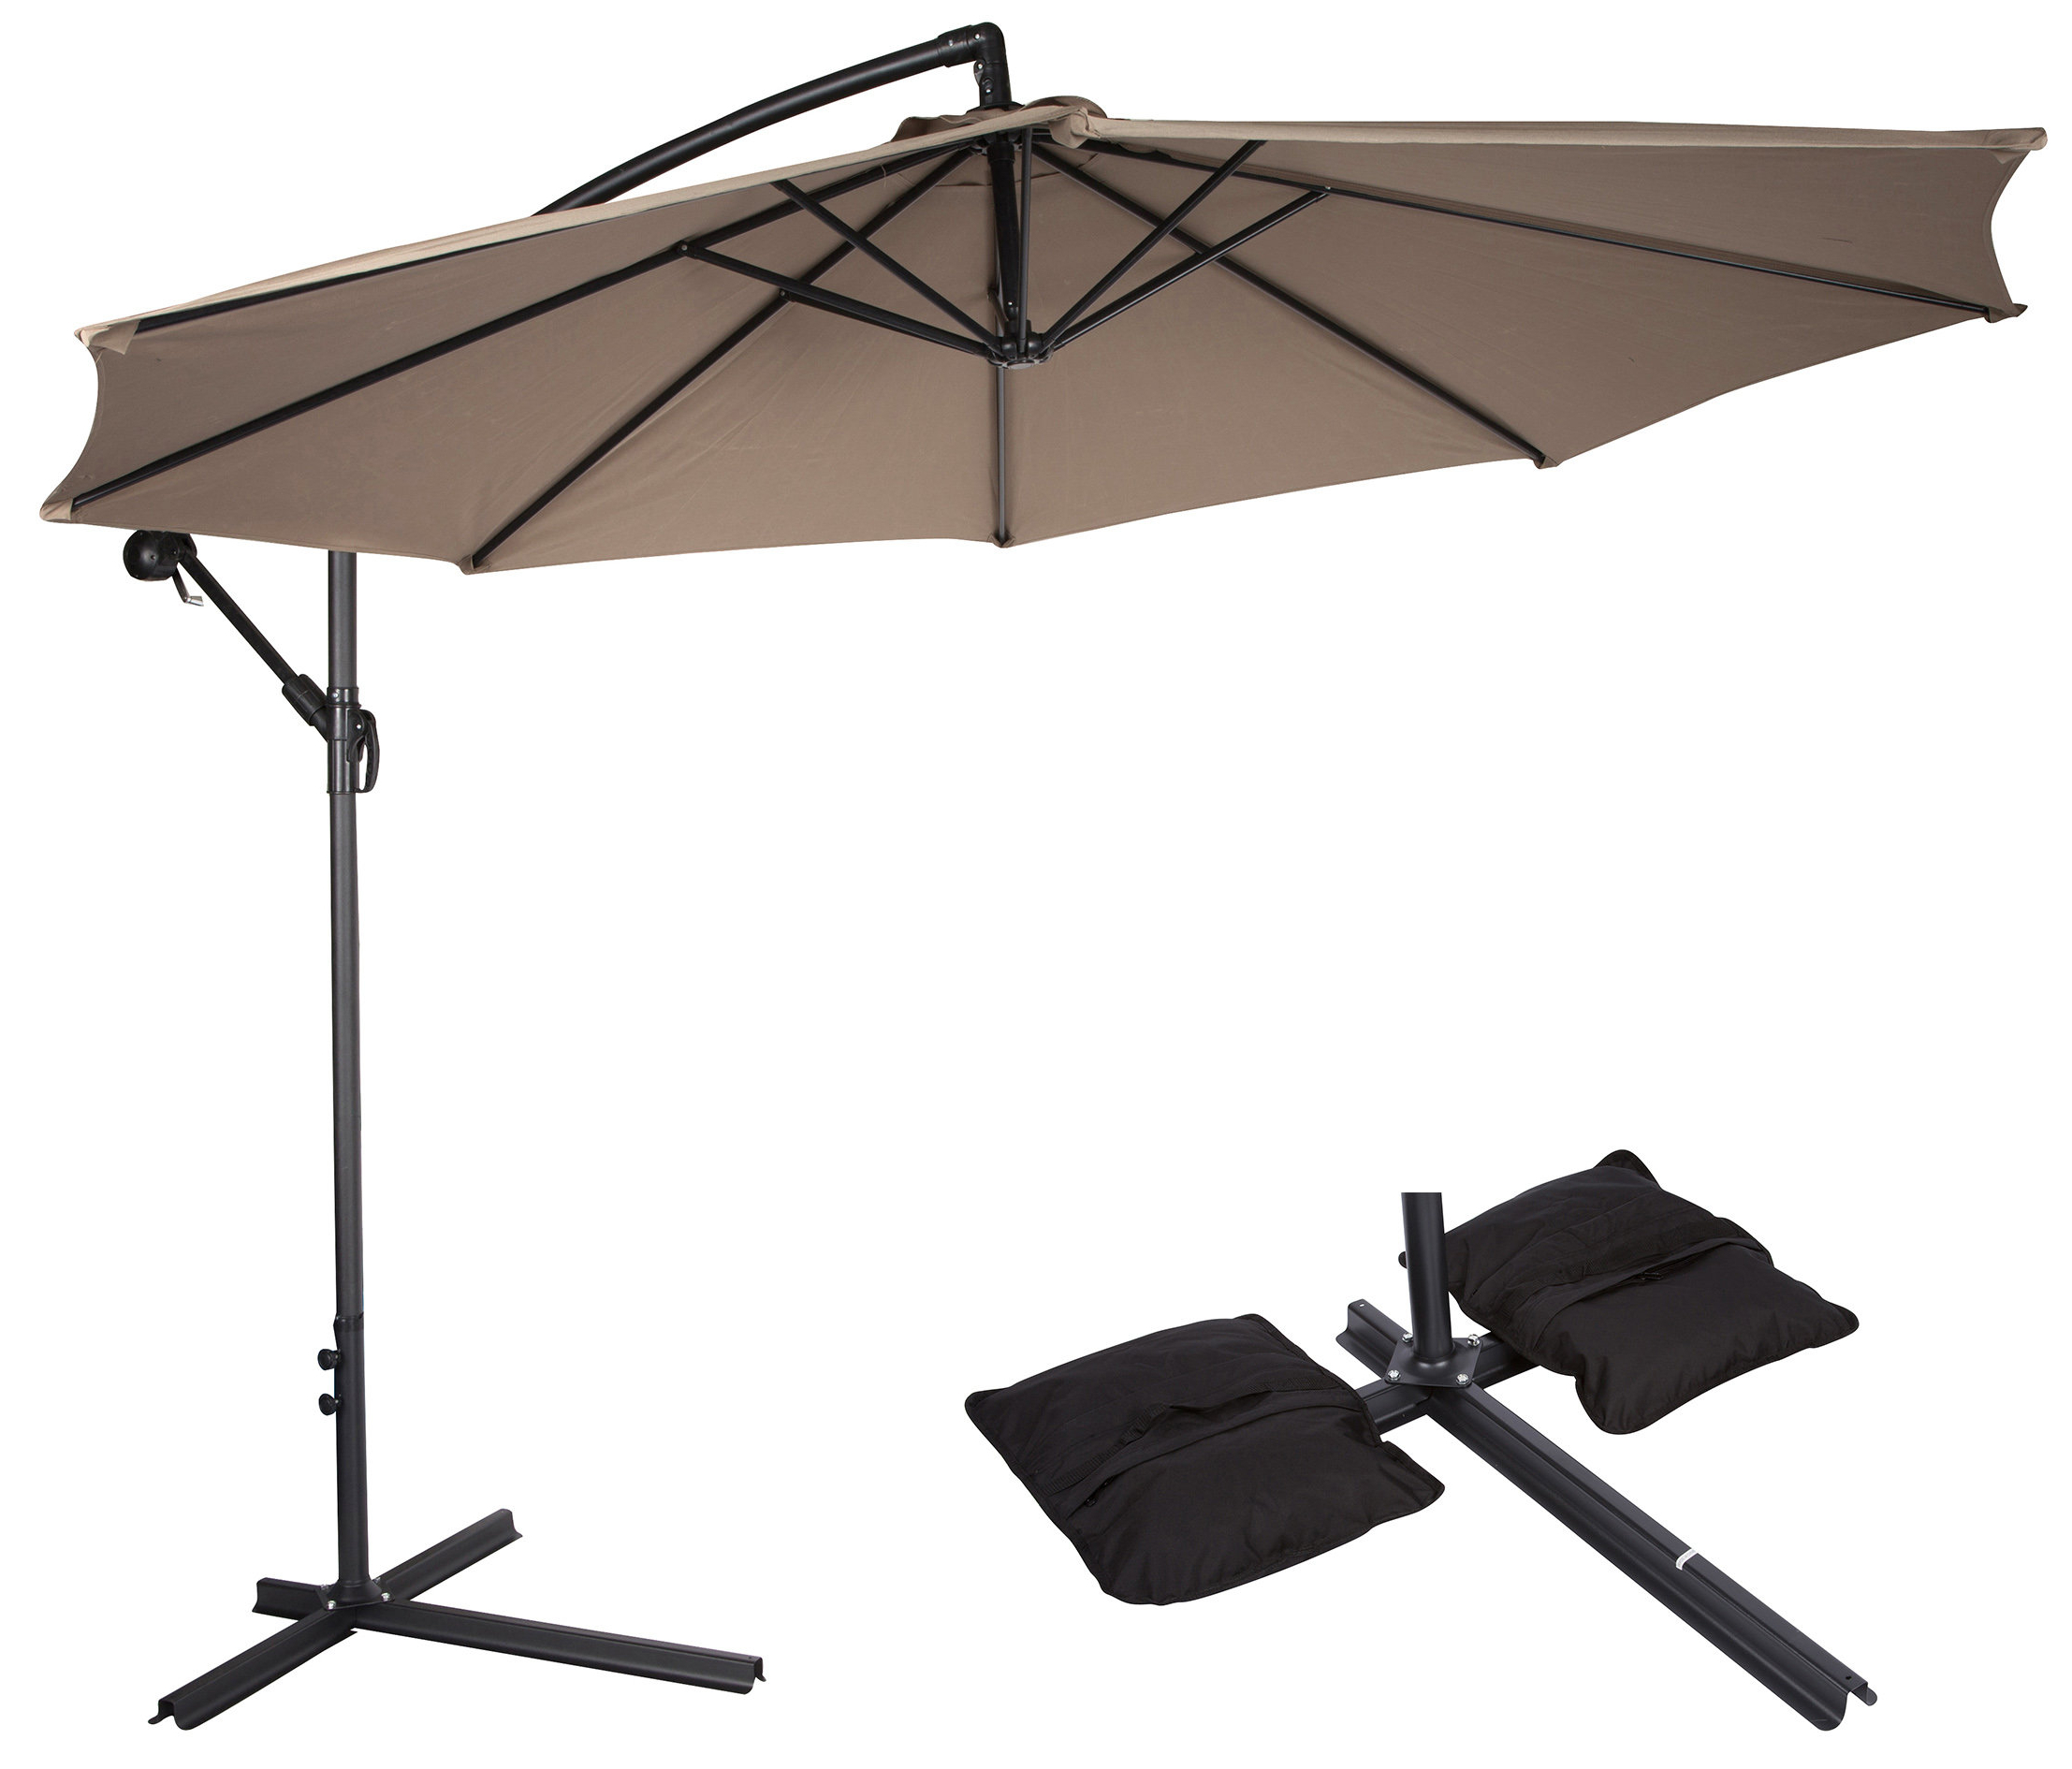 Meranda 2' Cantilever Umbrella Within Most Recently Released Justis Cantilever Umbrellas (View 4 of 20)